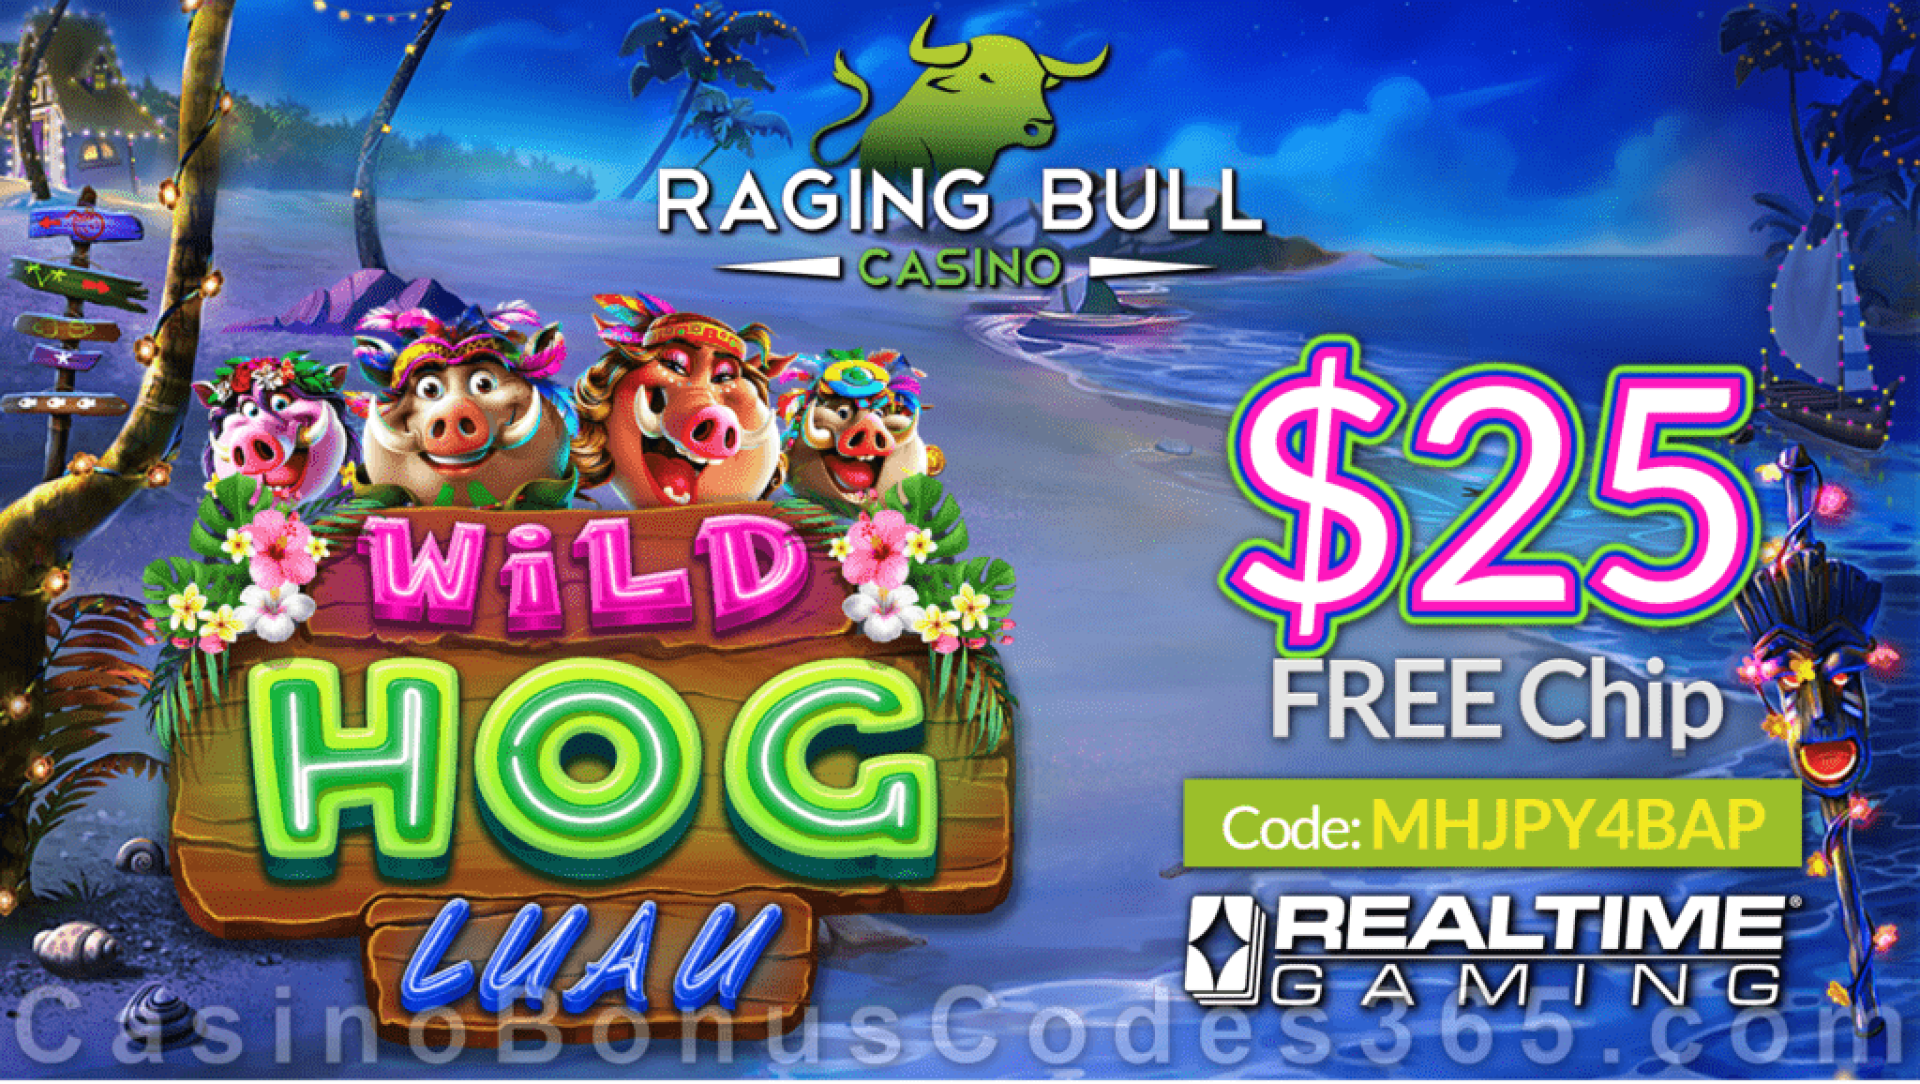 Raging Bull Casino $25 FREE Chip New RTG Game Wild Hog Luau Pre Launch Special No Deposit Offer